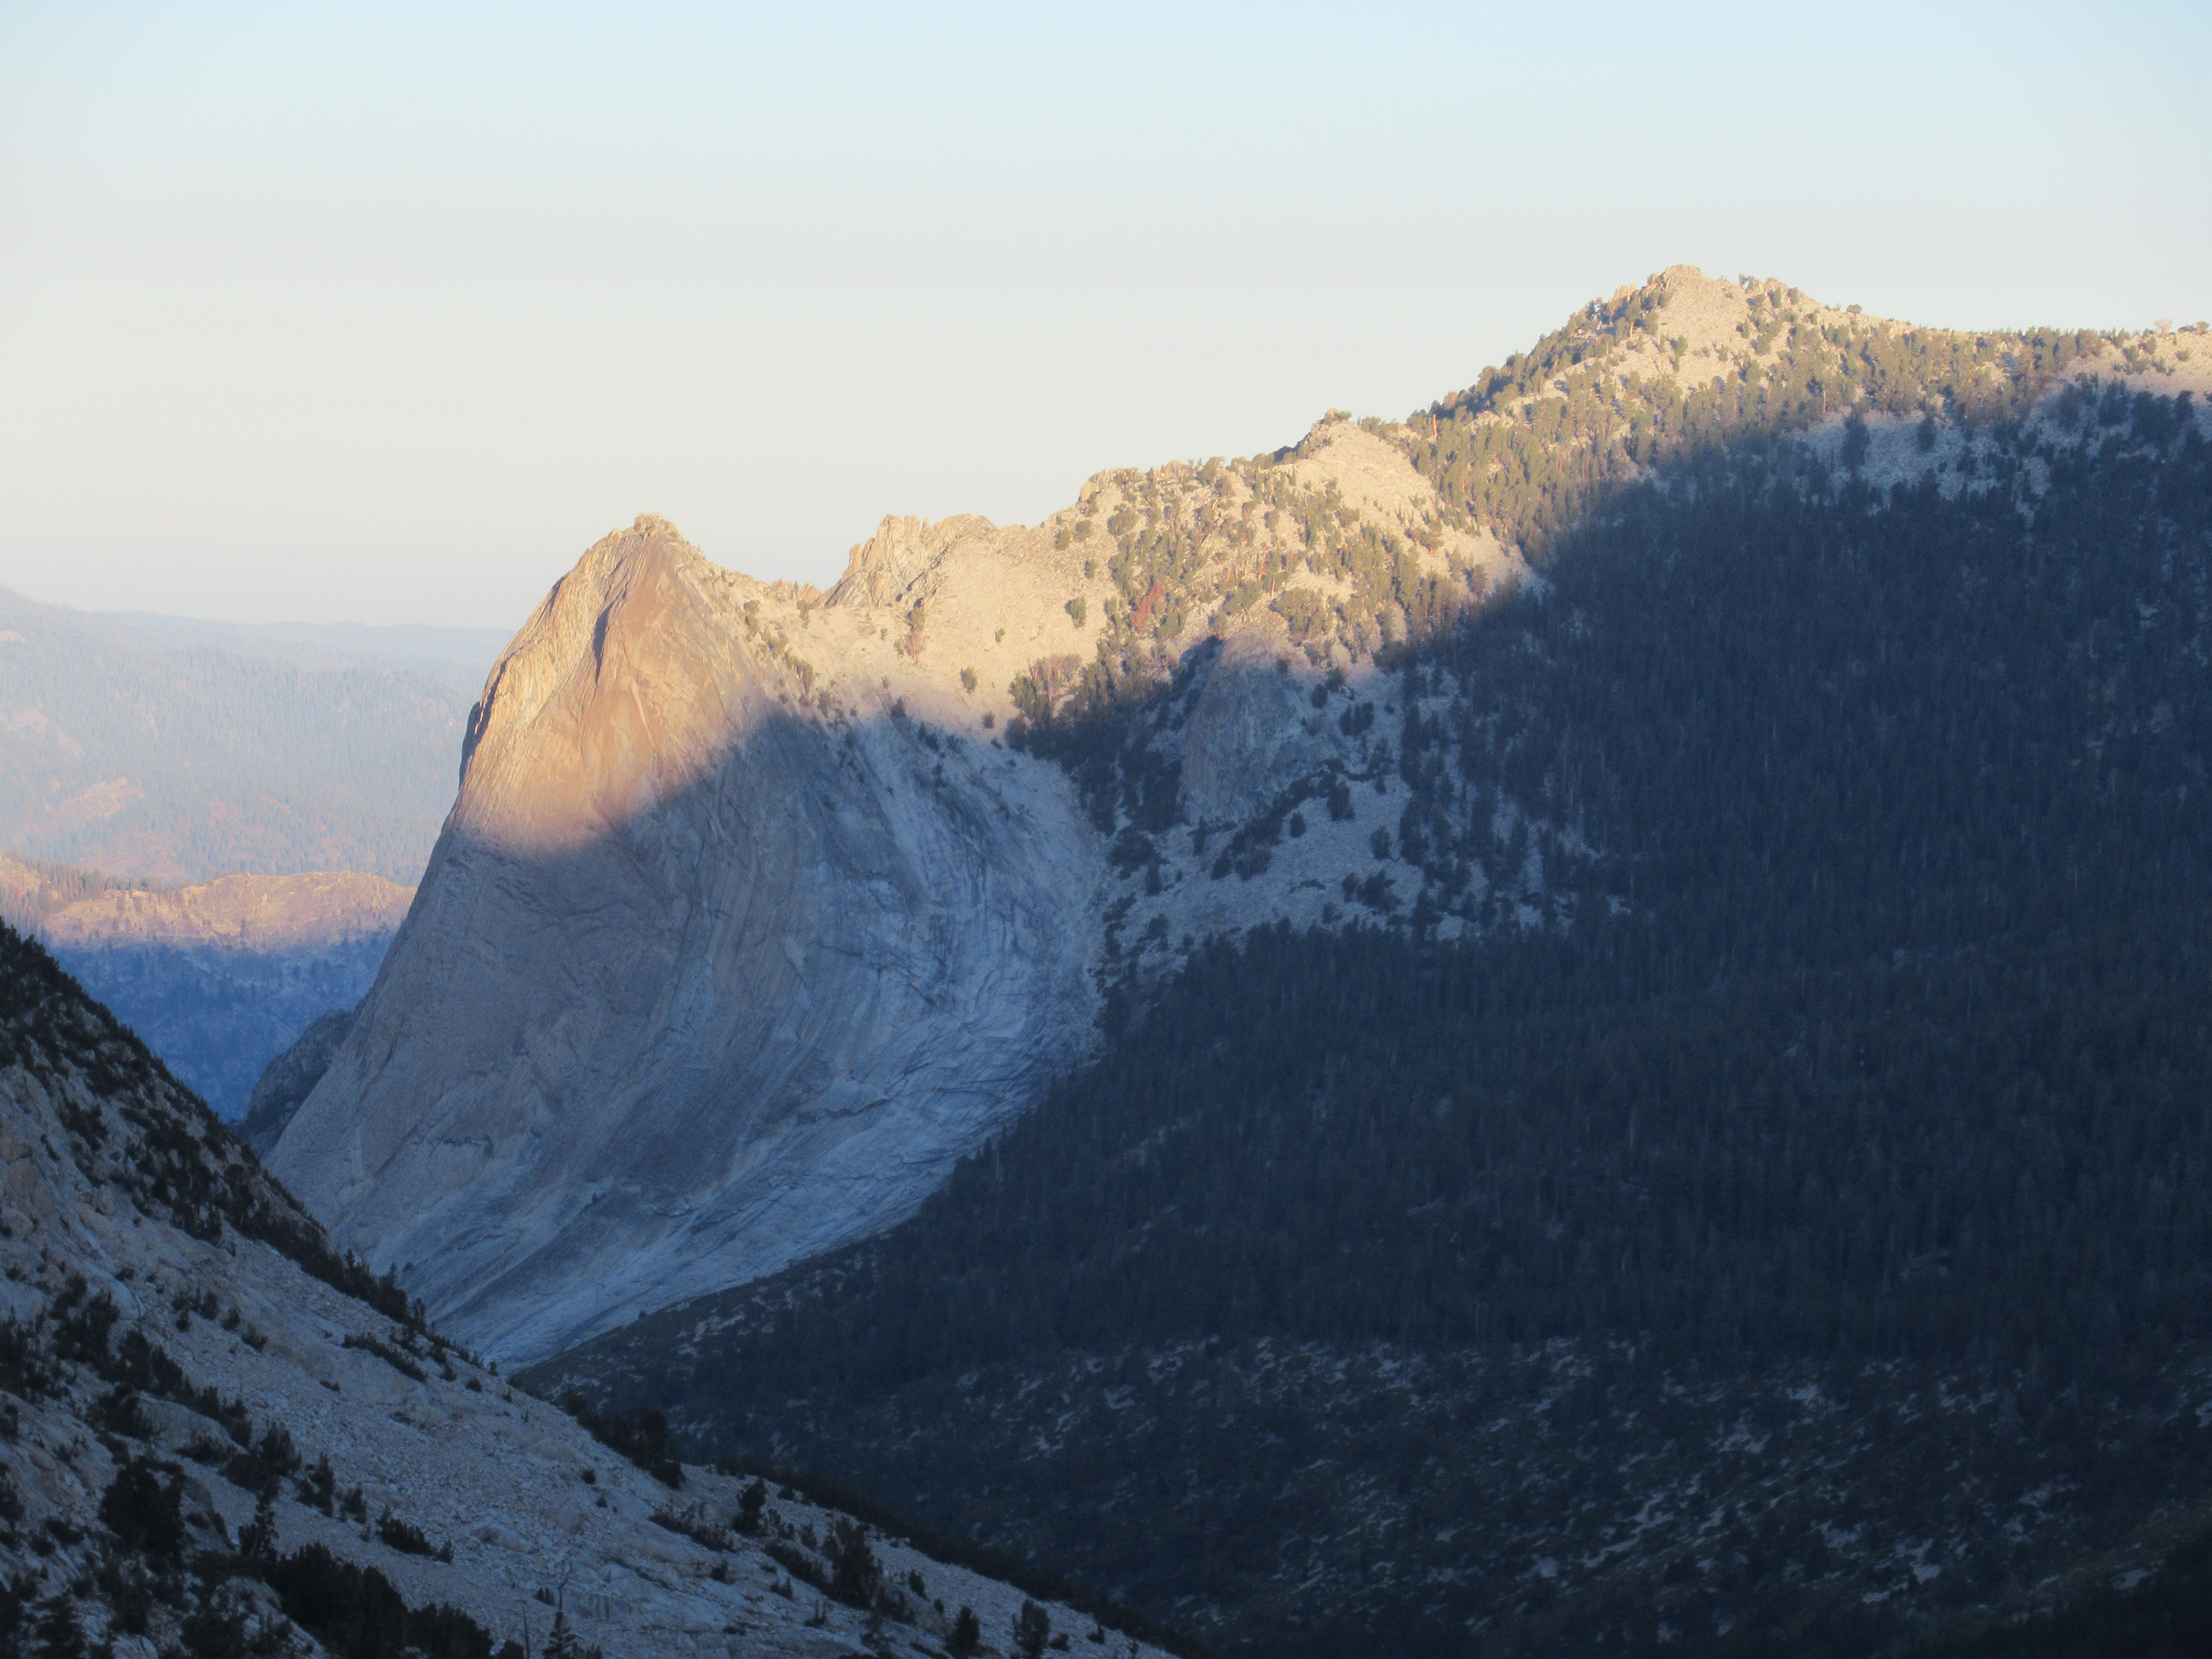 Climb To Glen Pass And Then Back Over Kearsarge Pass